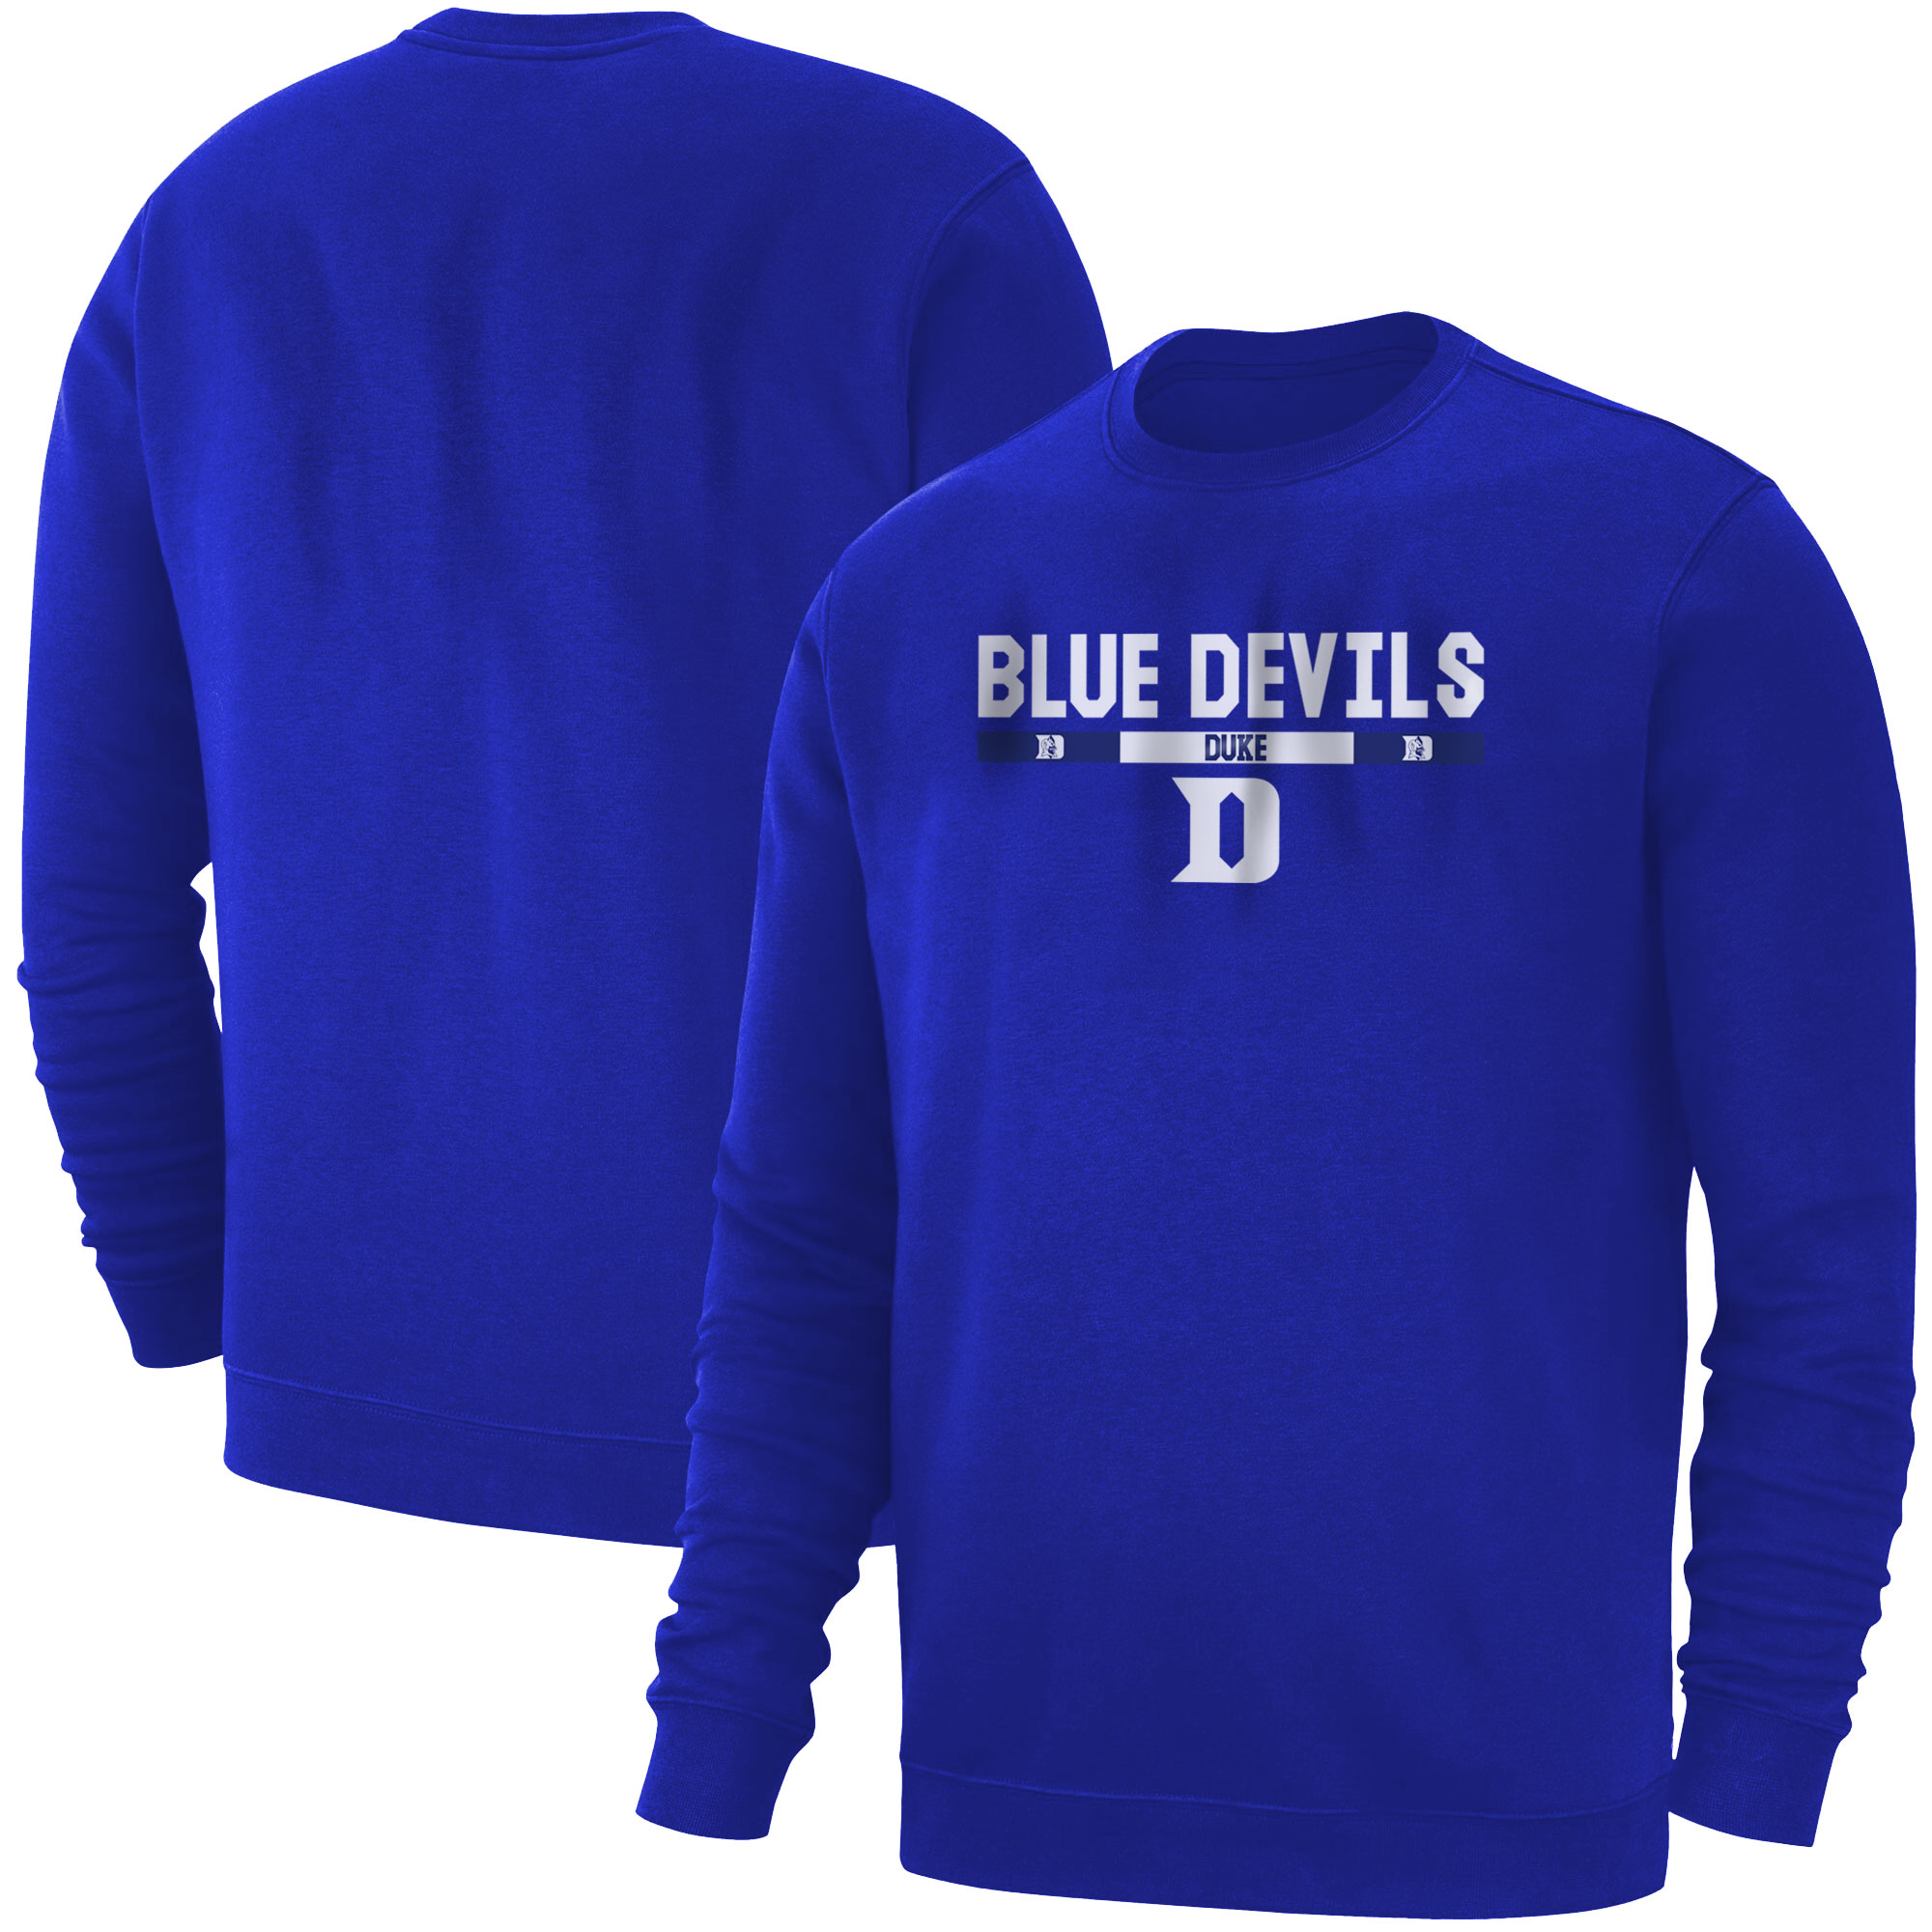 Blue Devils Basic (BSC-BLC-349-NCAA-BLUE-DEVILS)